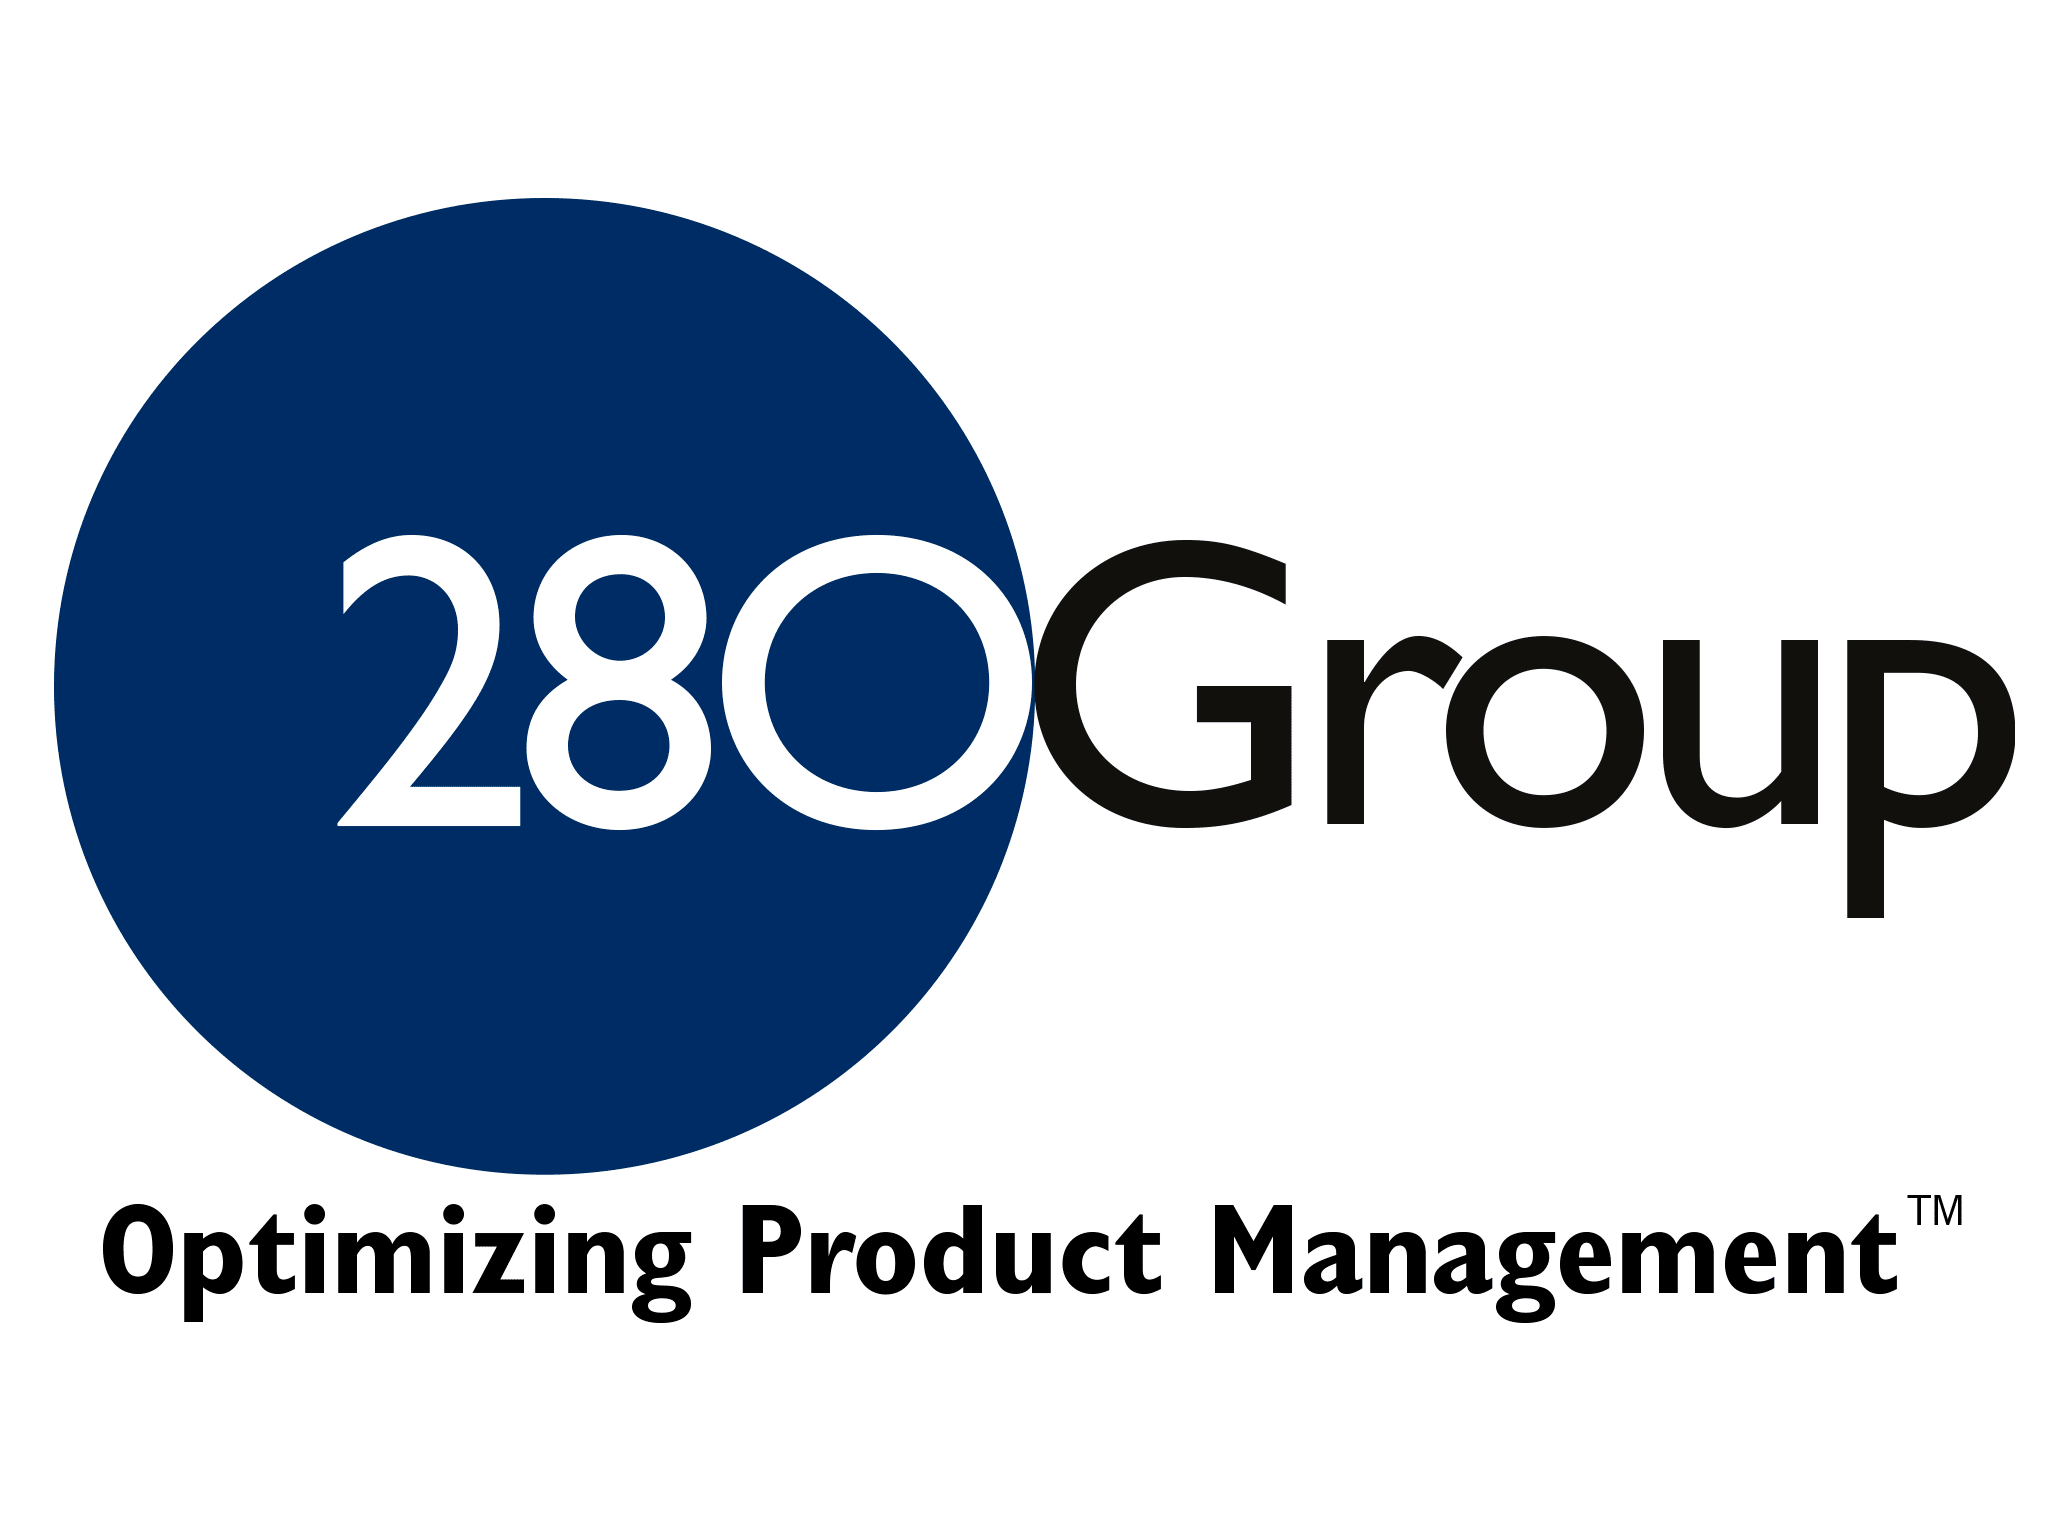 280 Group coupon code